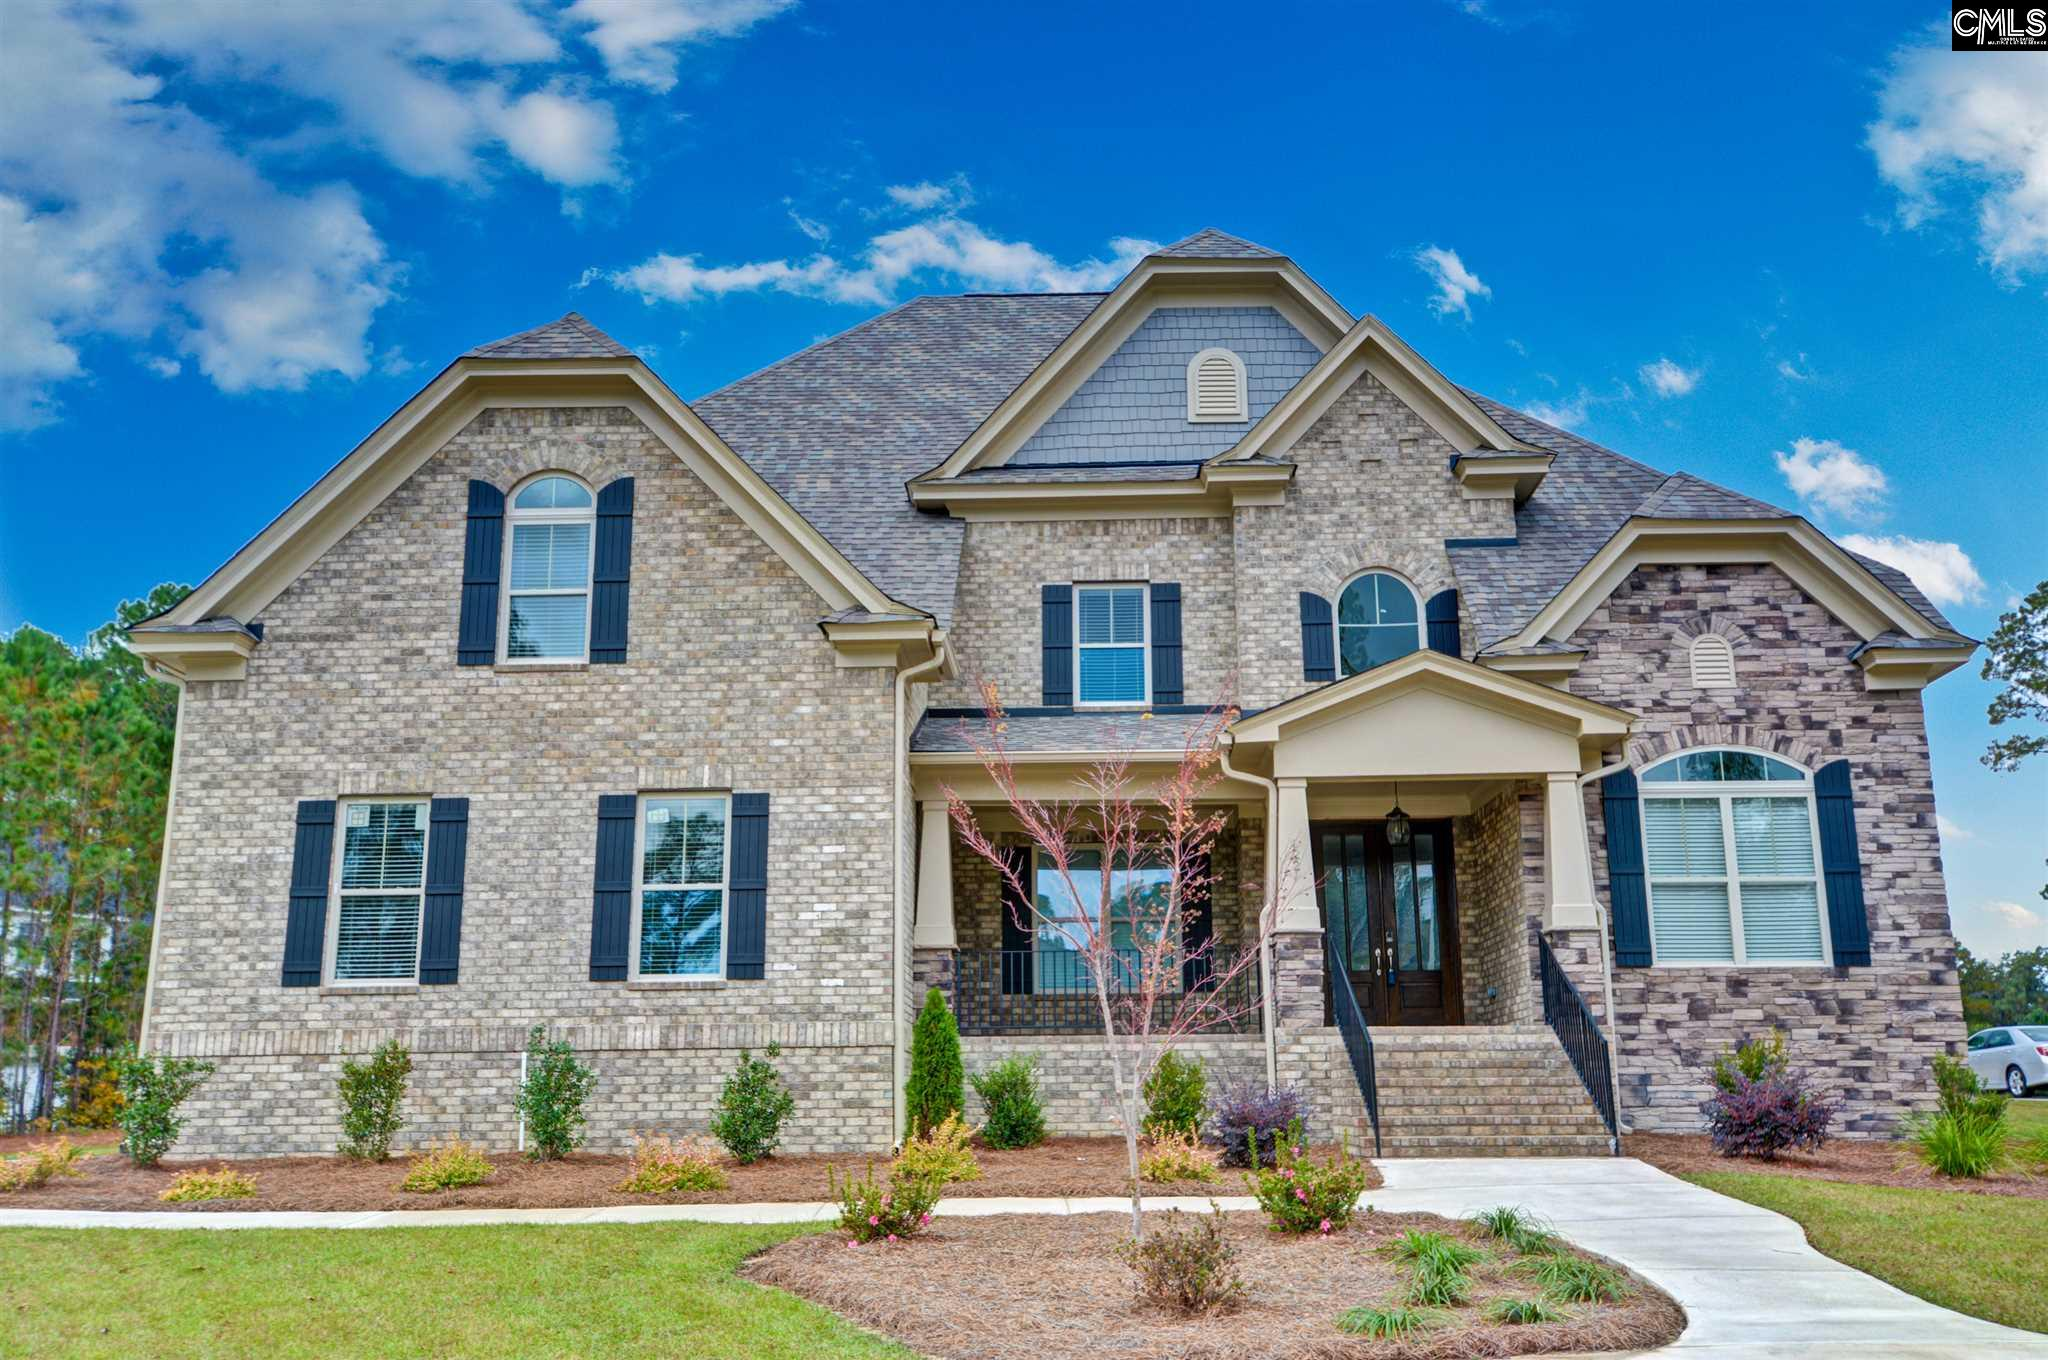 122 Sweetspire Elgin, SC 29045